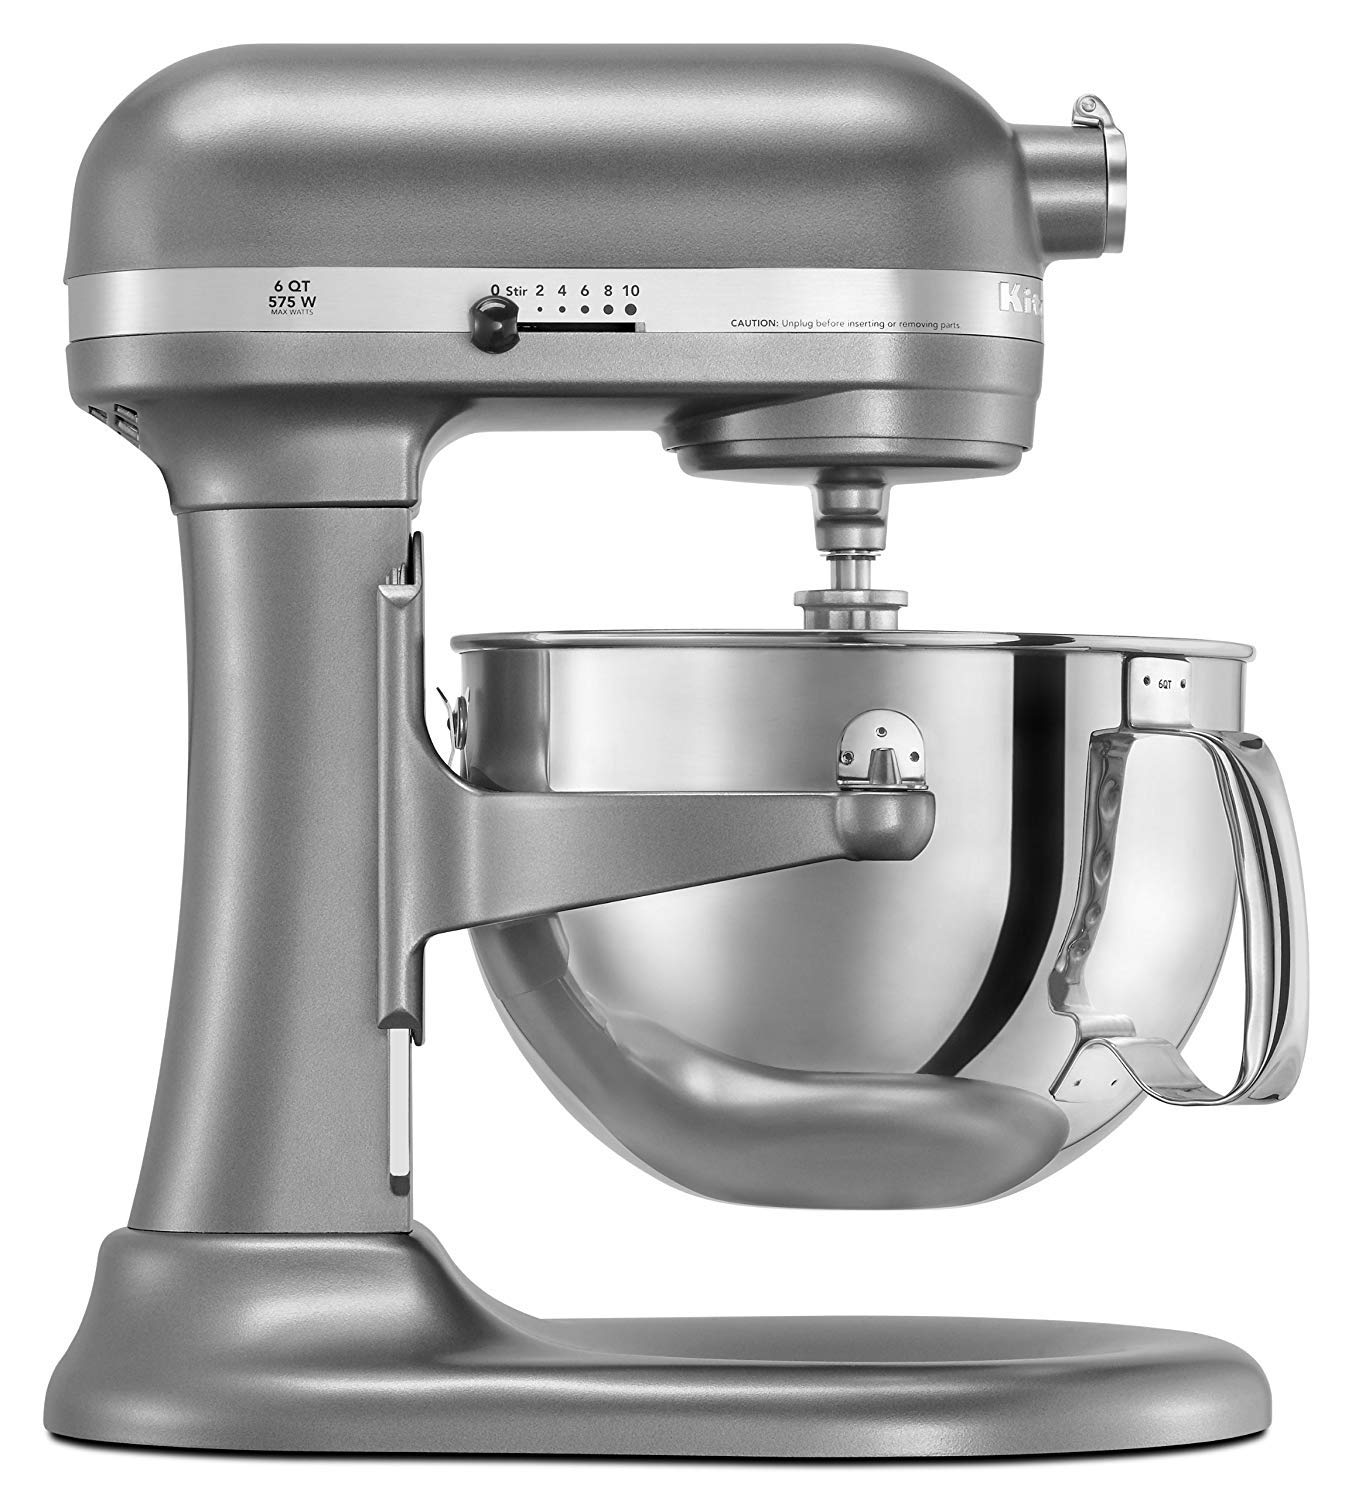 KitchenAid Factory Professional 600 6-Qt. Bowl-Lift Stand Mixer - Cocoa Silver (Certified Refurbished)